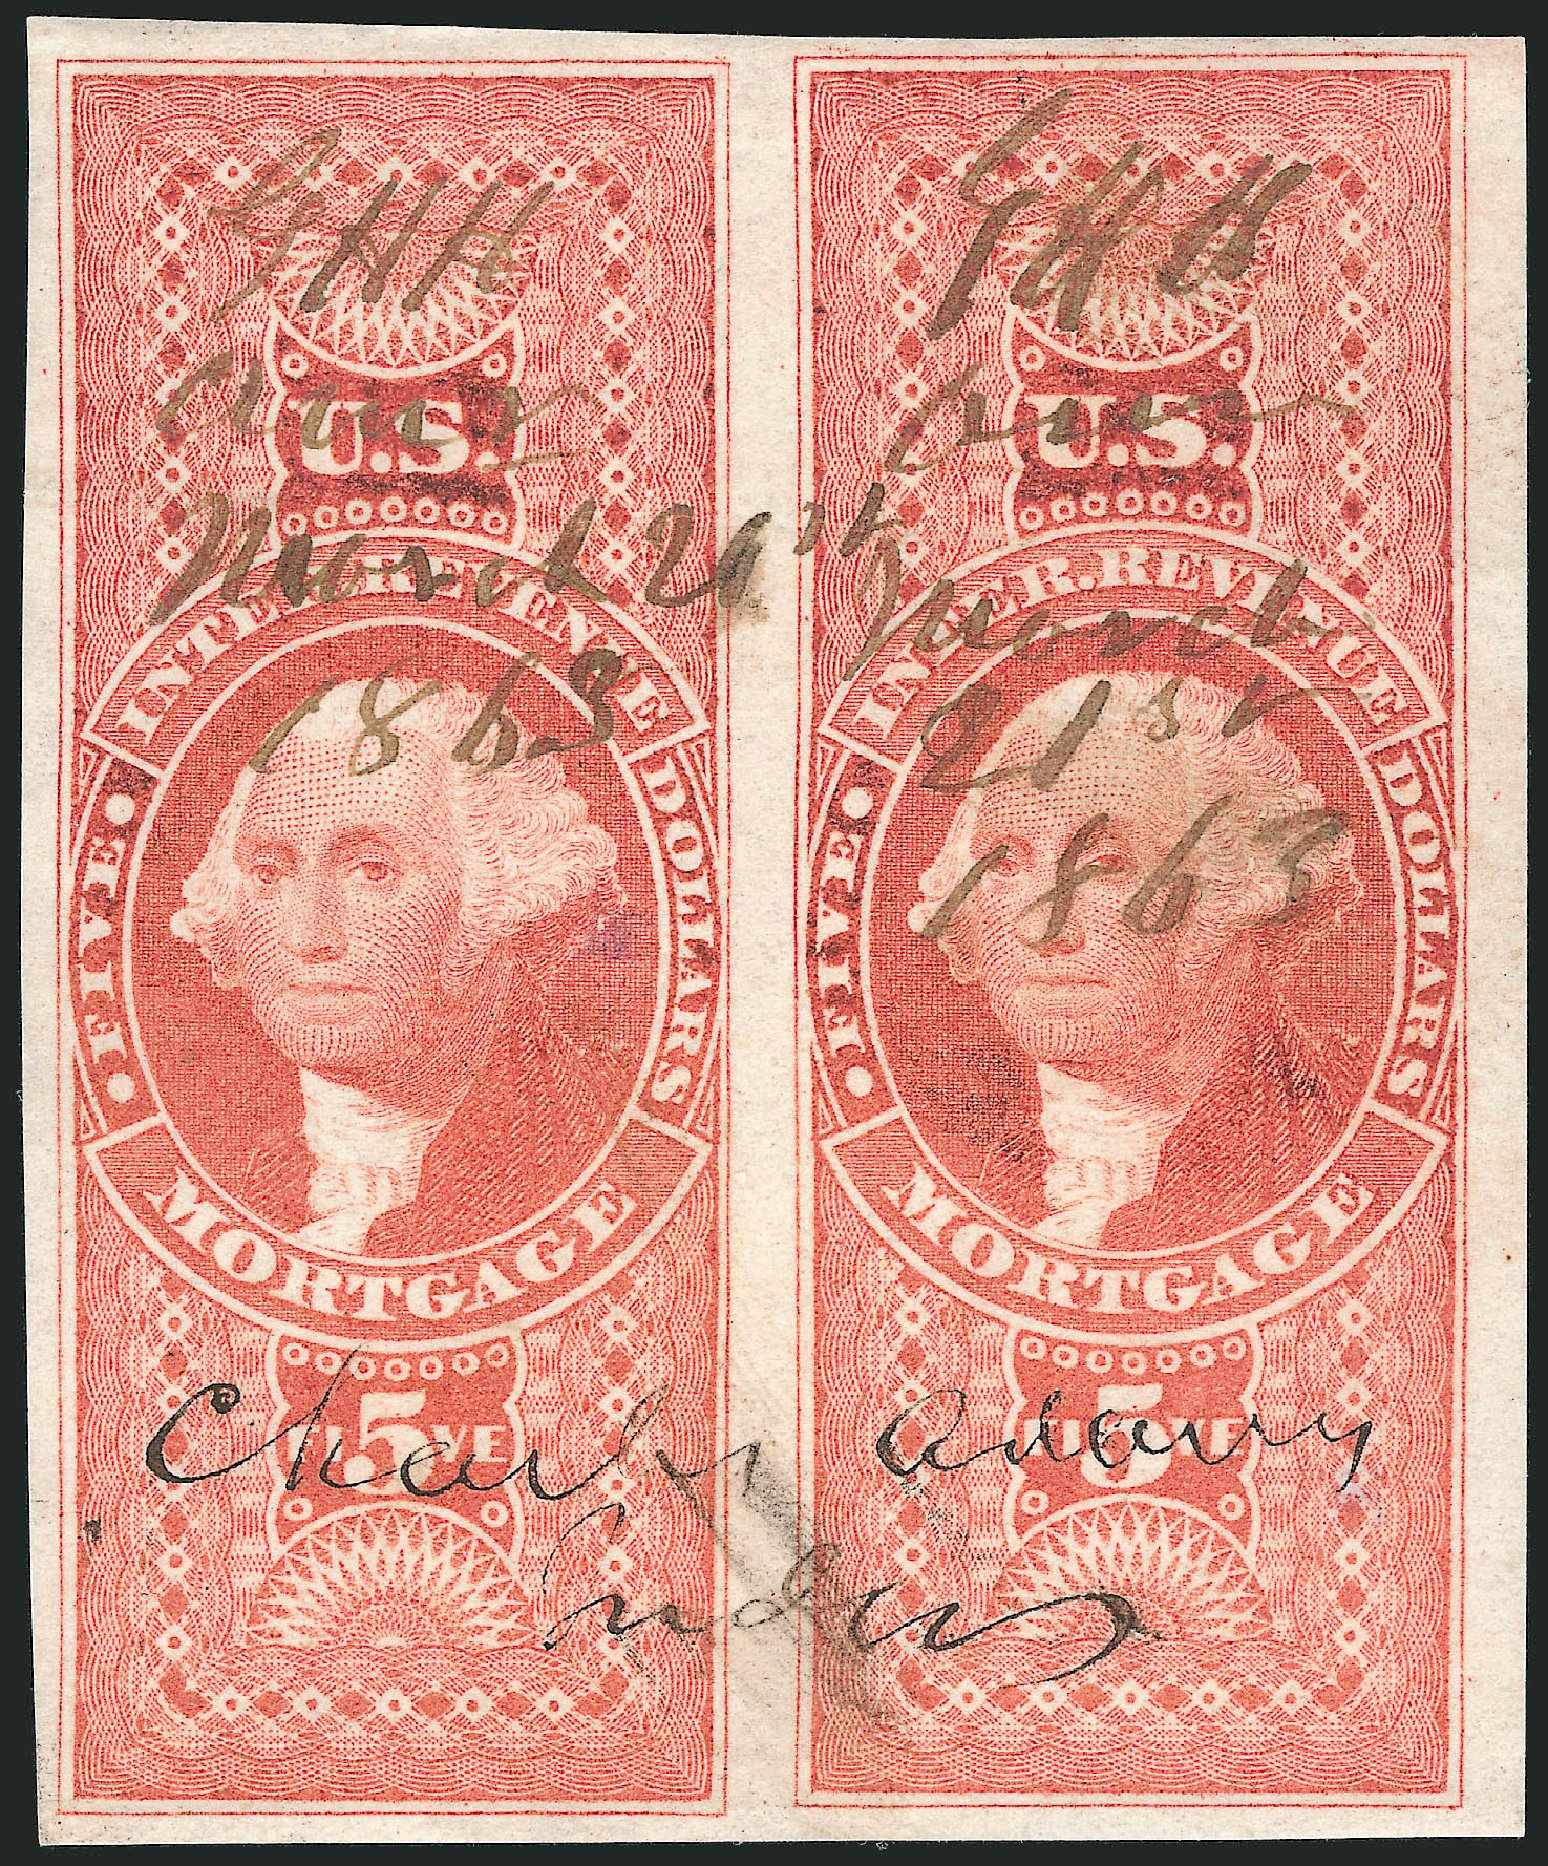 Costs of US Stamp Scott Catalog #R91 - 1862 US$5.00 Revenue Mortgage. Robert Siegel Auction Galleries, Nov 2013, Sale 1061, Lot 4287